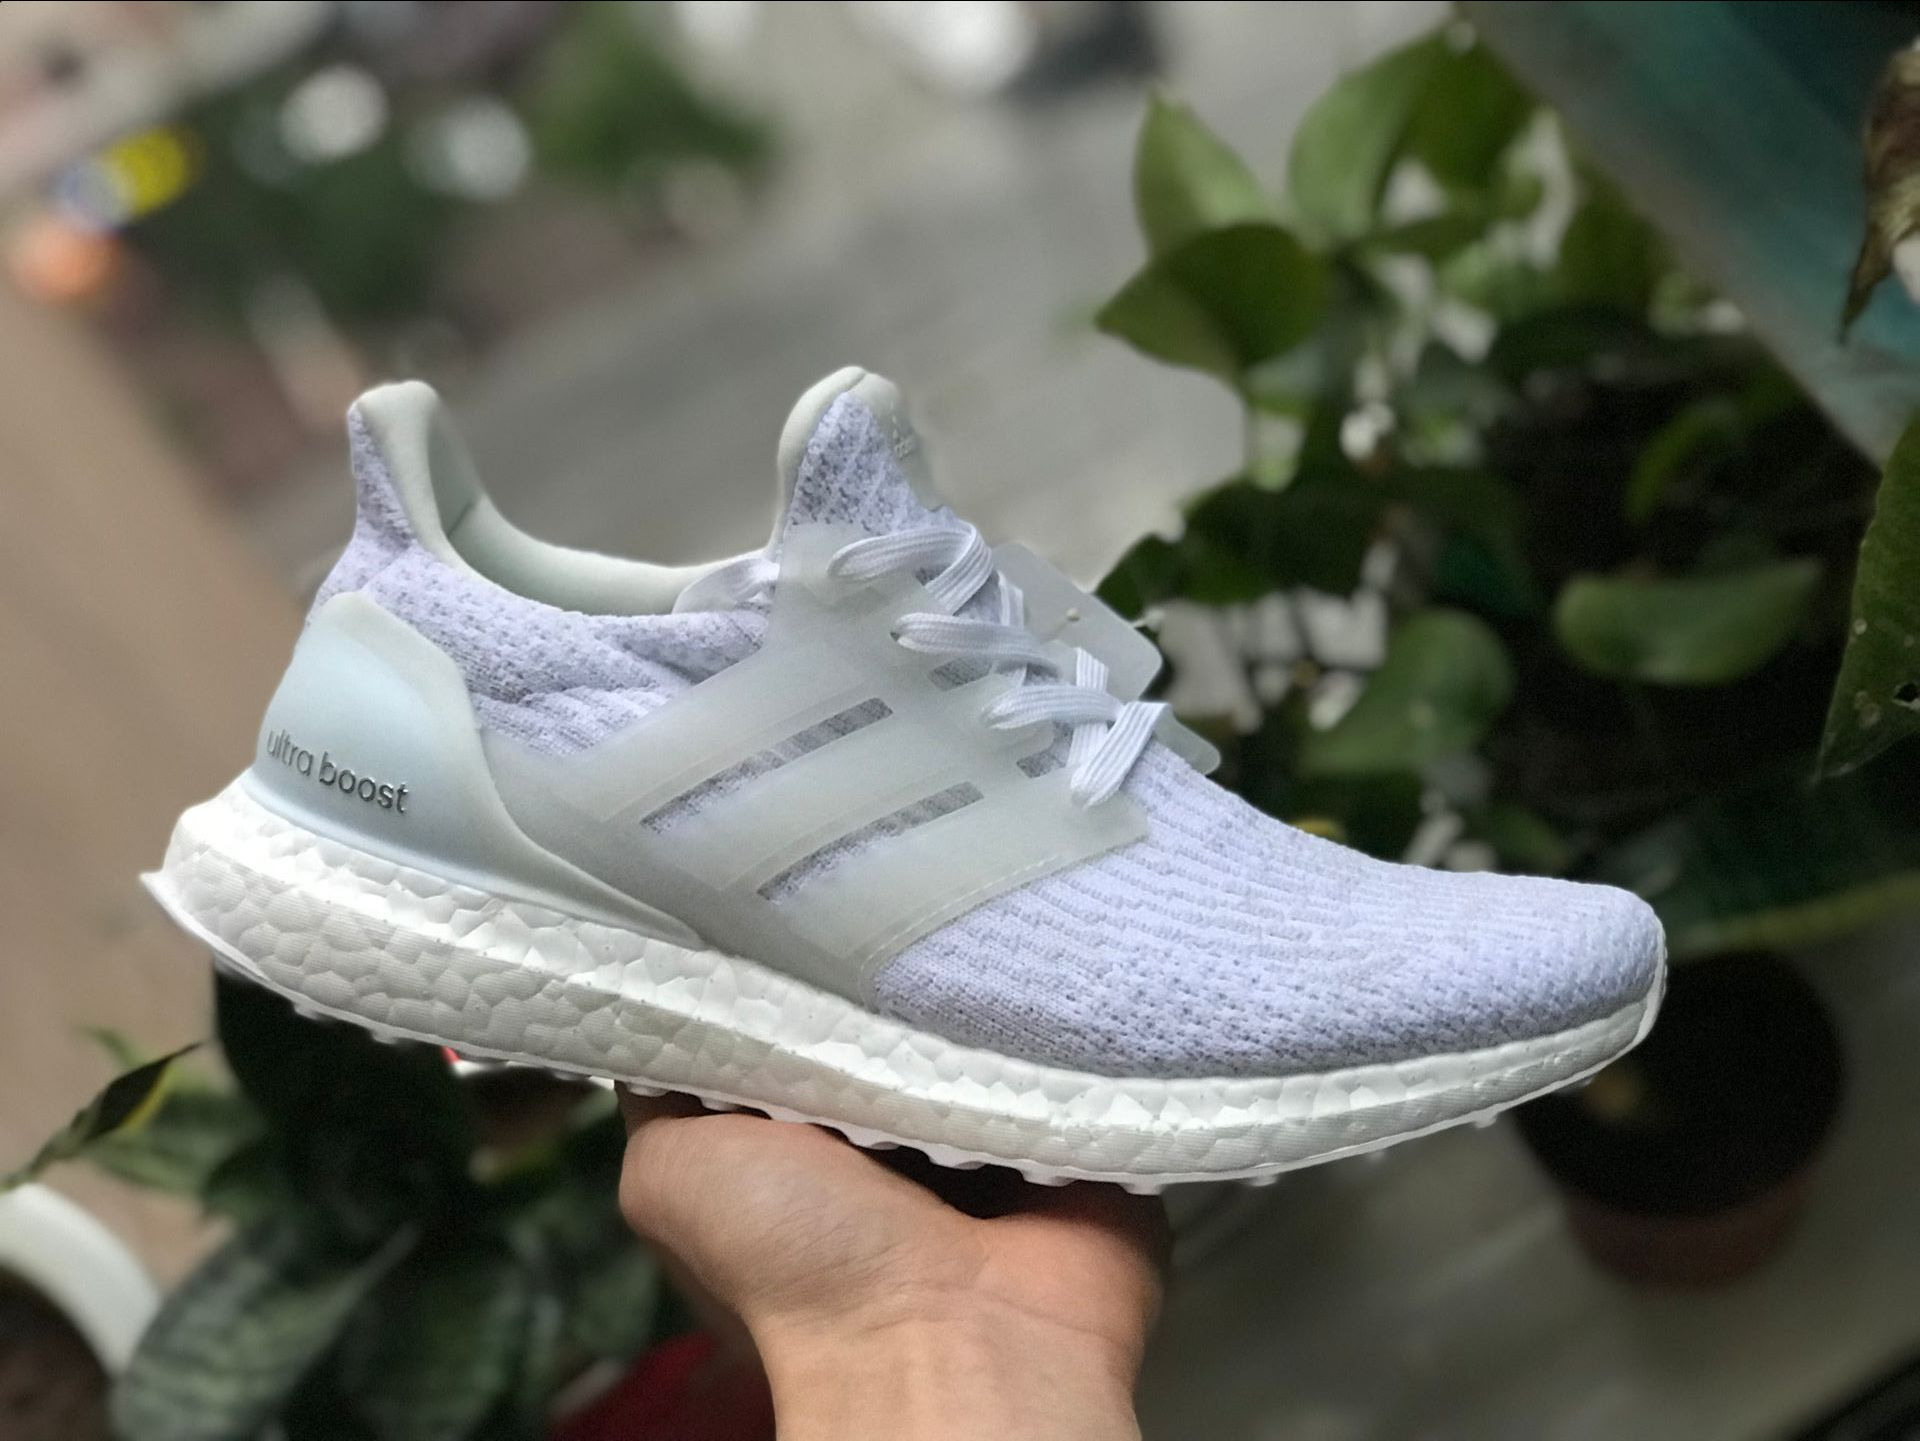 Wholesale HOT 2018 aaaaa quality ARKYN shoes        Ultra Boost ub4.0 shoes 5